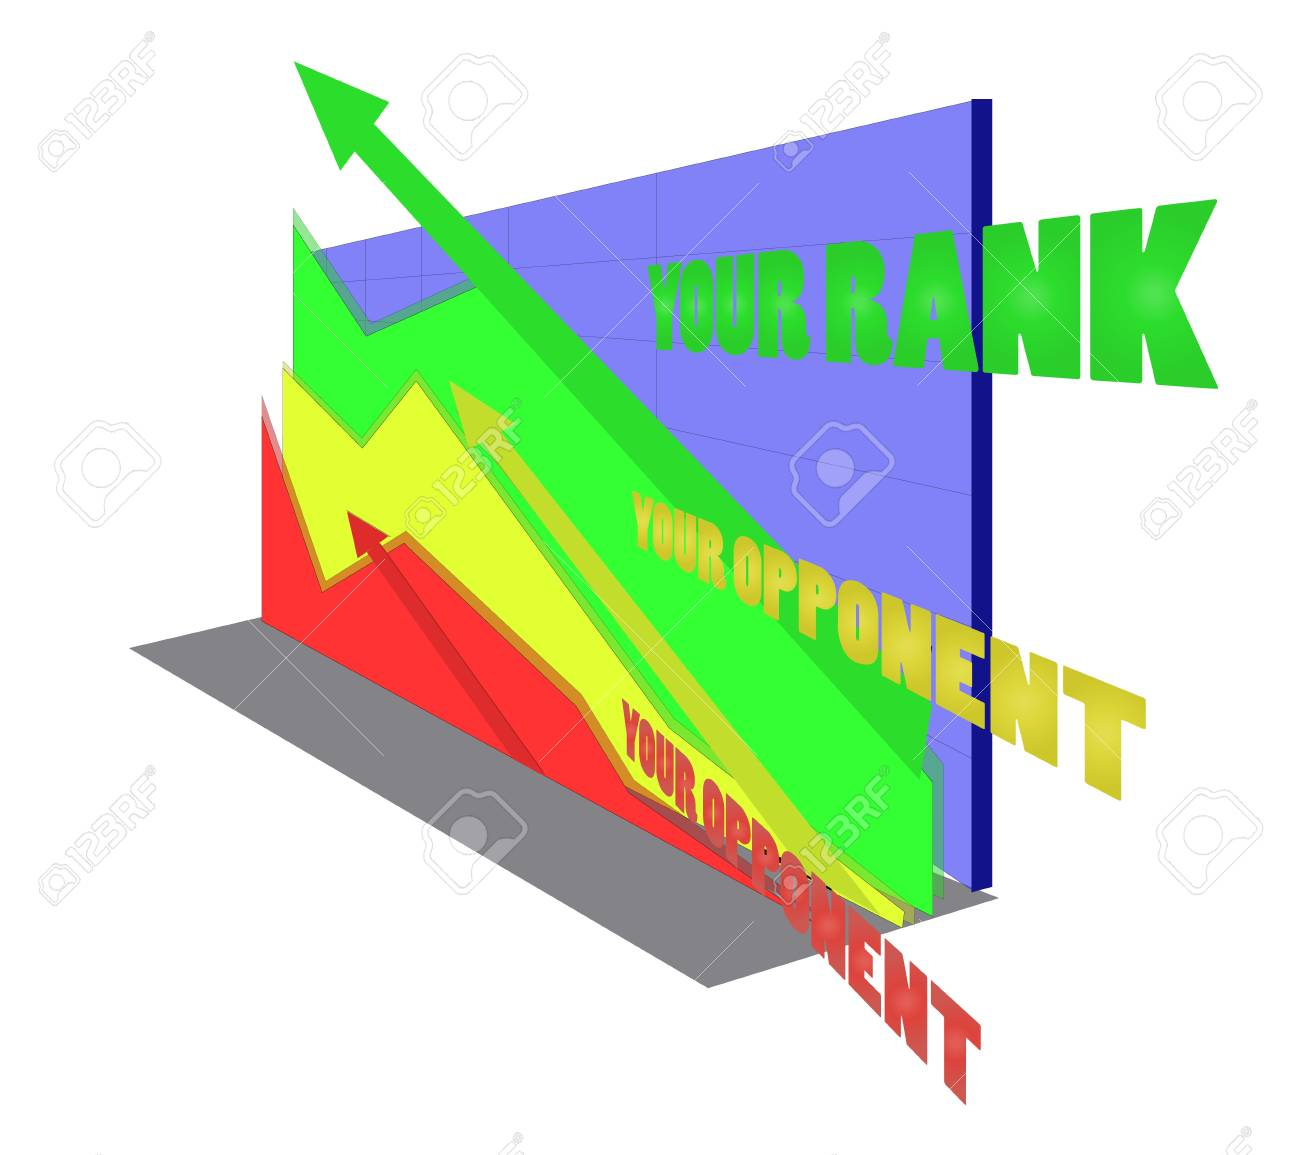 Search Engine Rank Stock Vector - 16888802